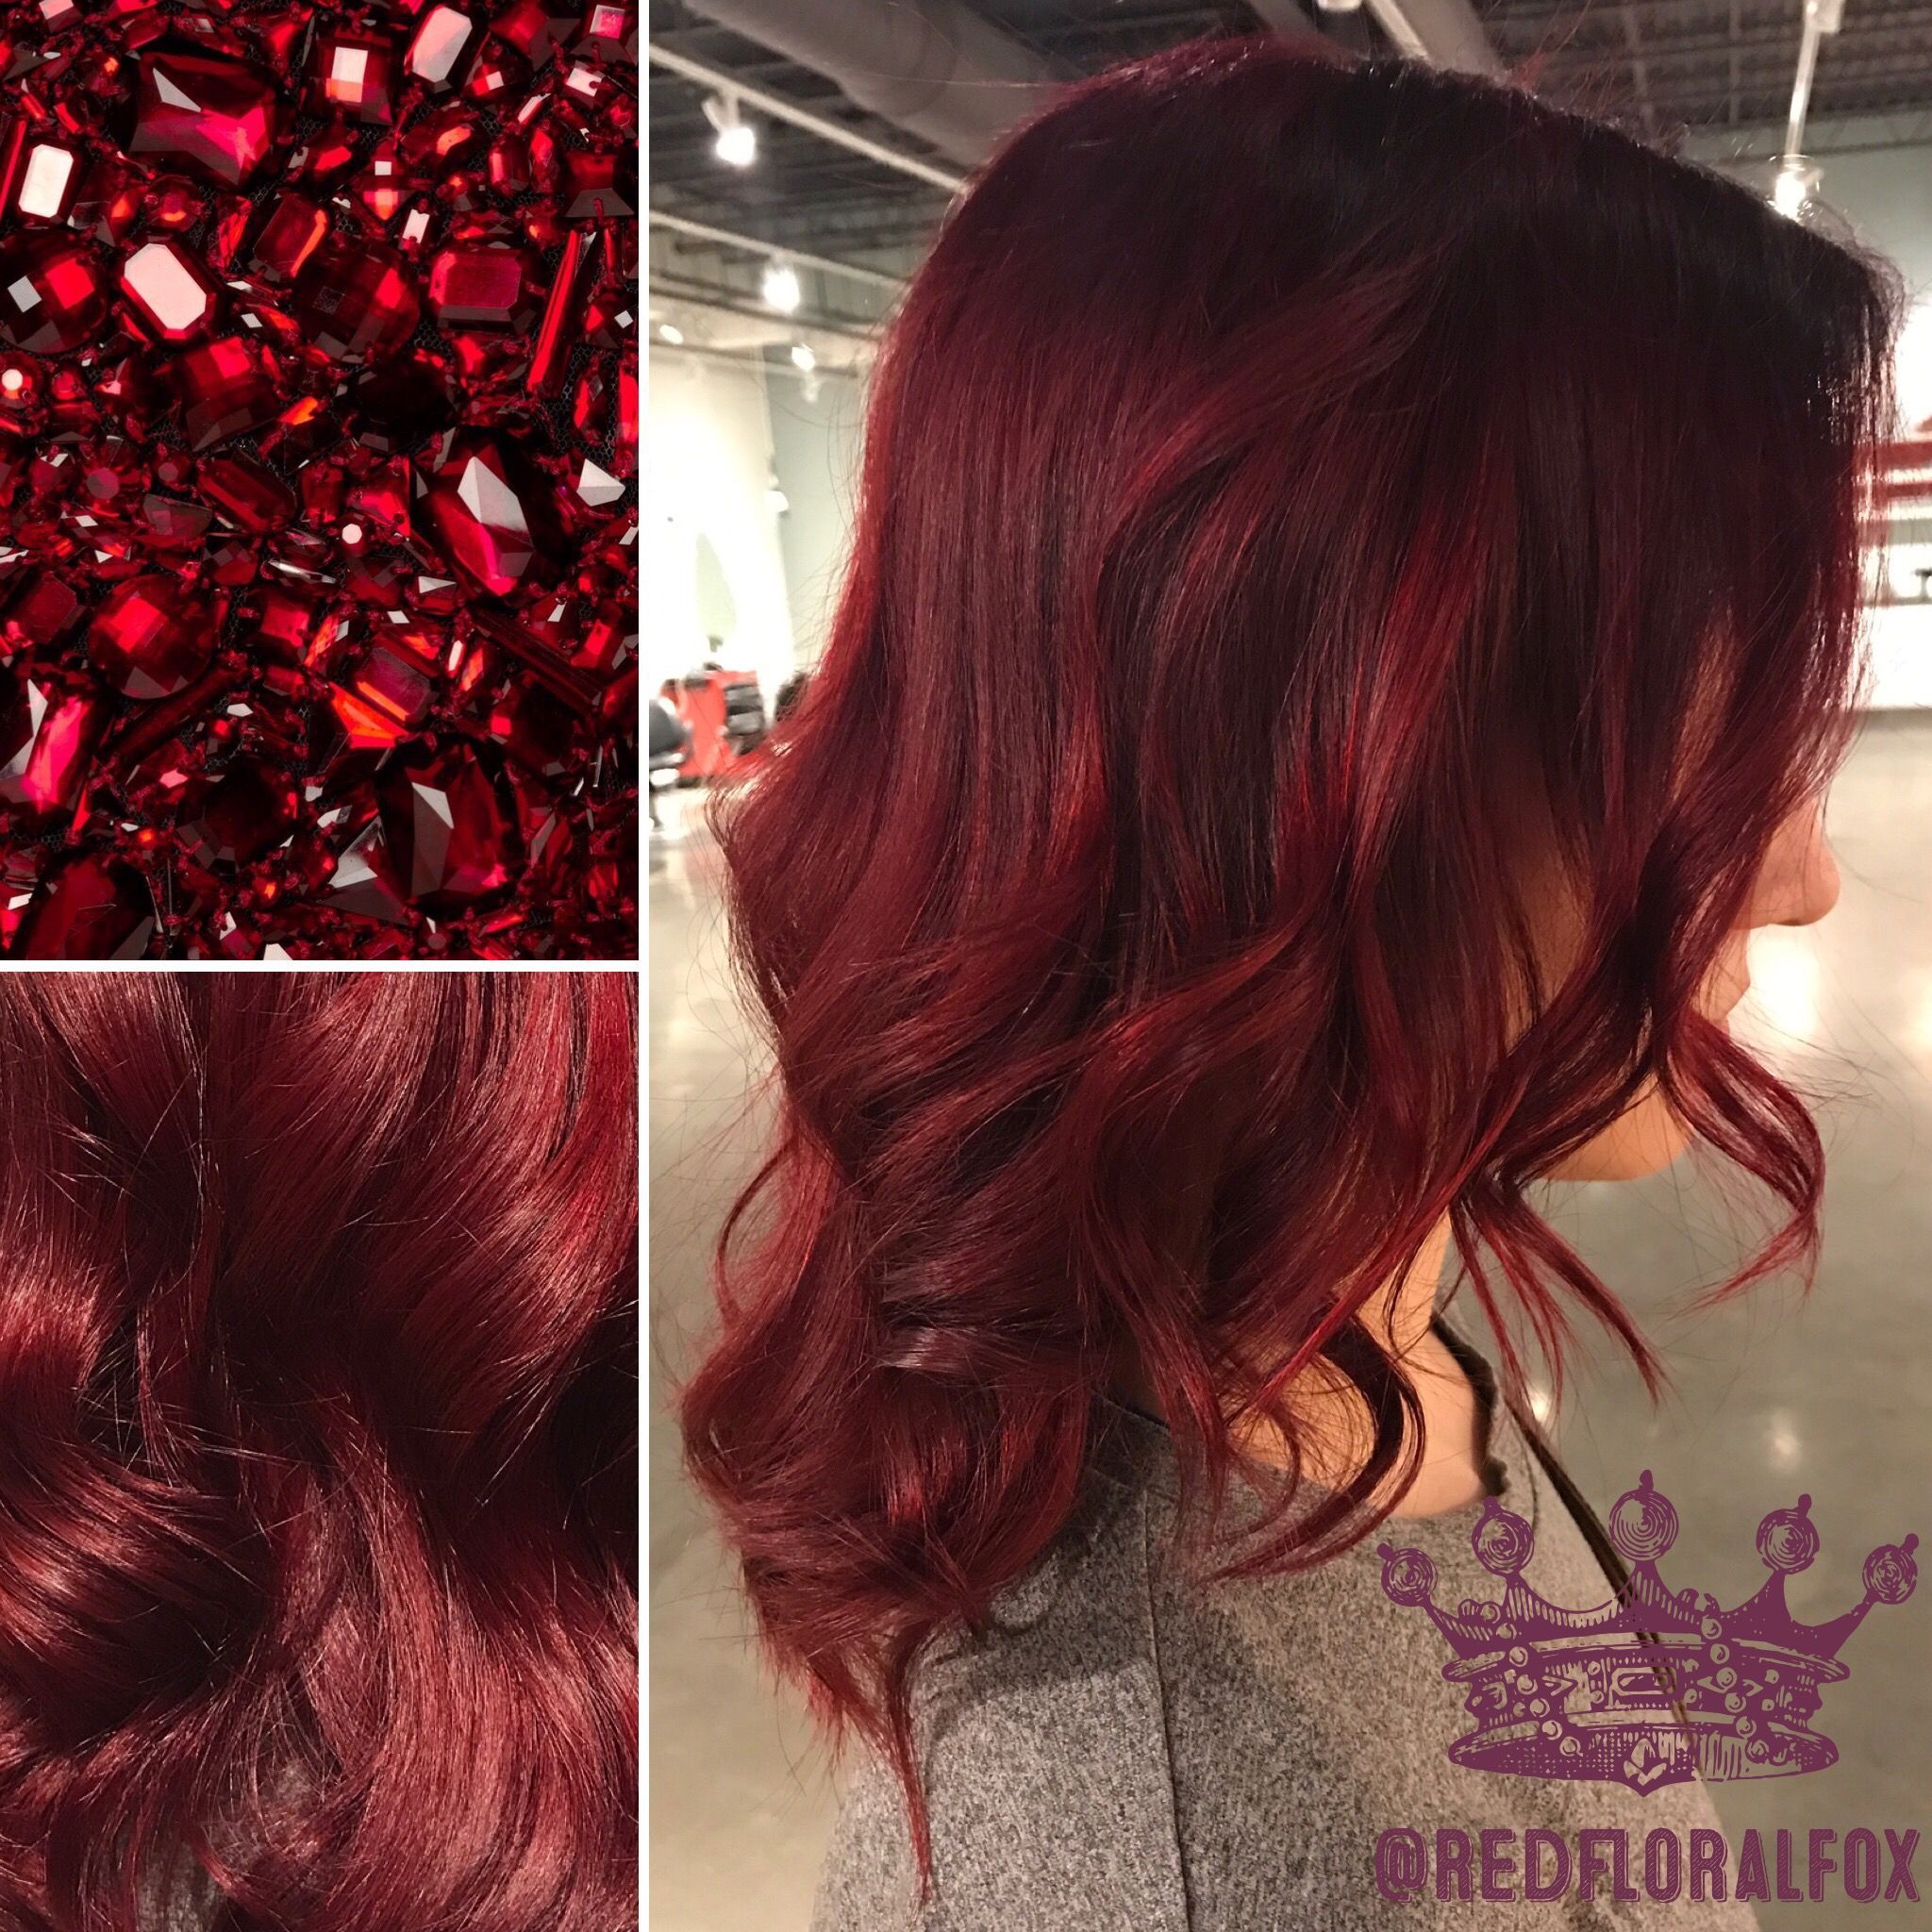 Ruby Red Hair Color By Taylor Lowe At Moxie Hair Salon In St Paul